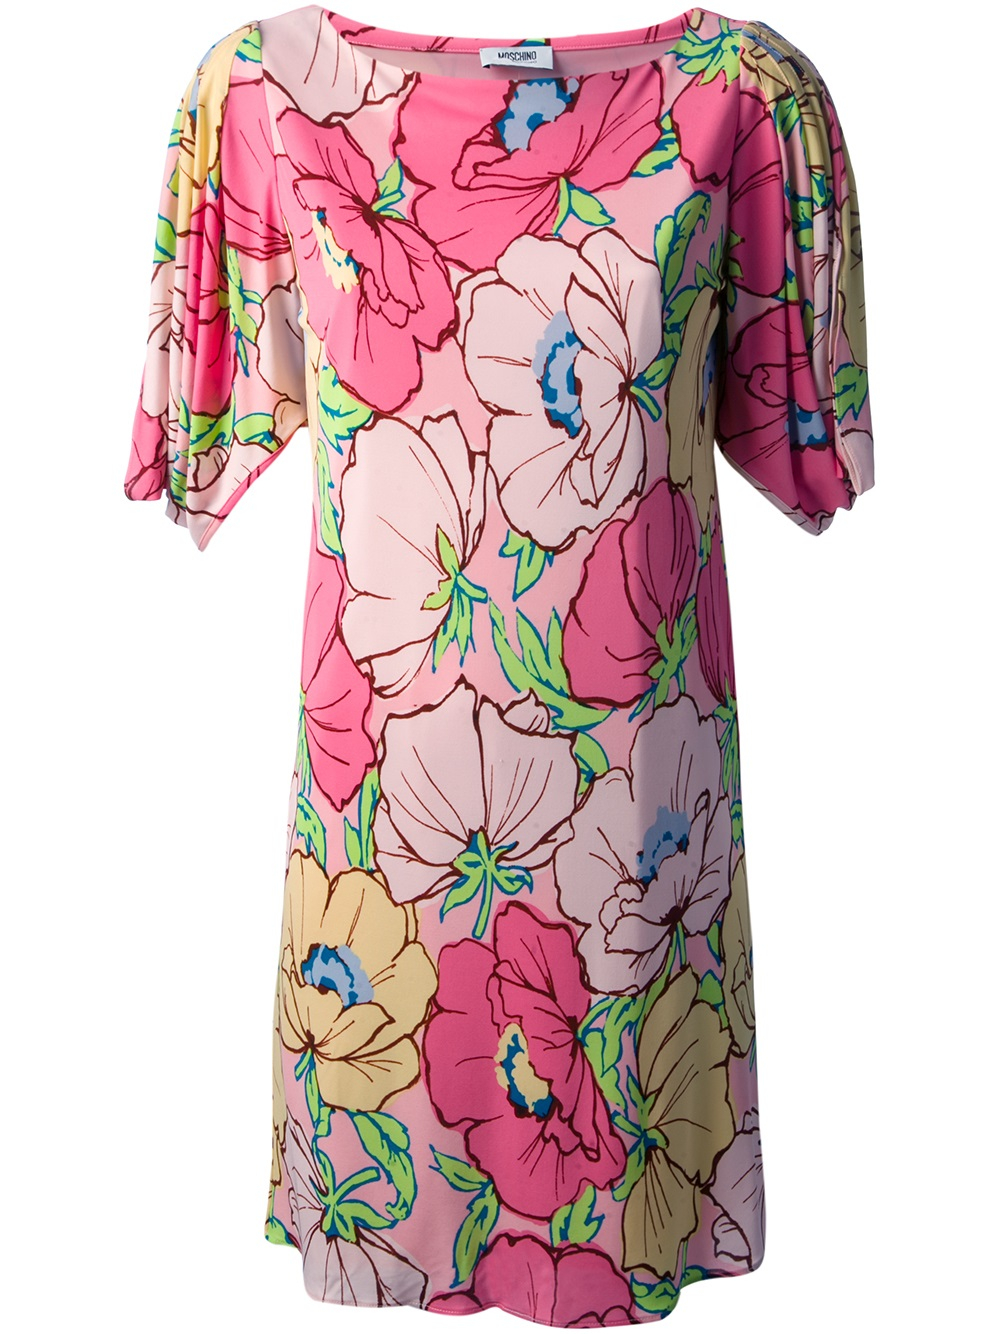 b1cfc7d852c6 Moschino Floral Print Shift Dress in Pink - Lyst